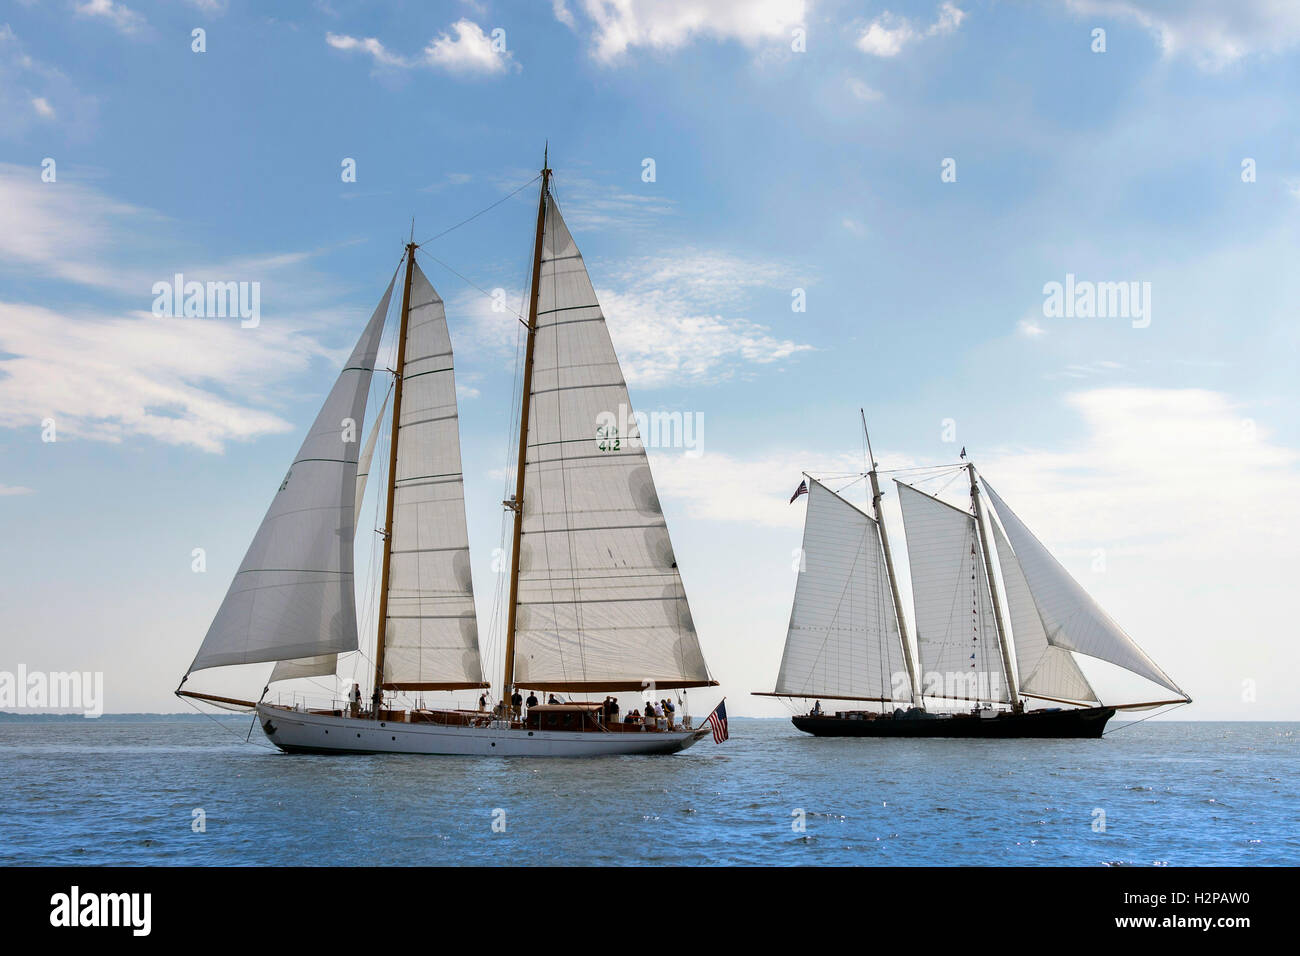 The U.S. Naval Academy training sailboat Summerwind, left, sails to welcome the 139-foot yacht America, replica - Stock Image